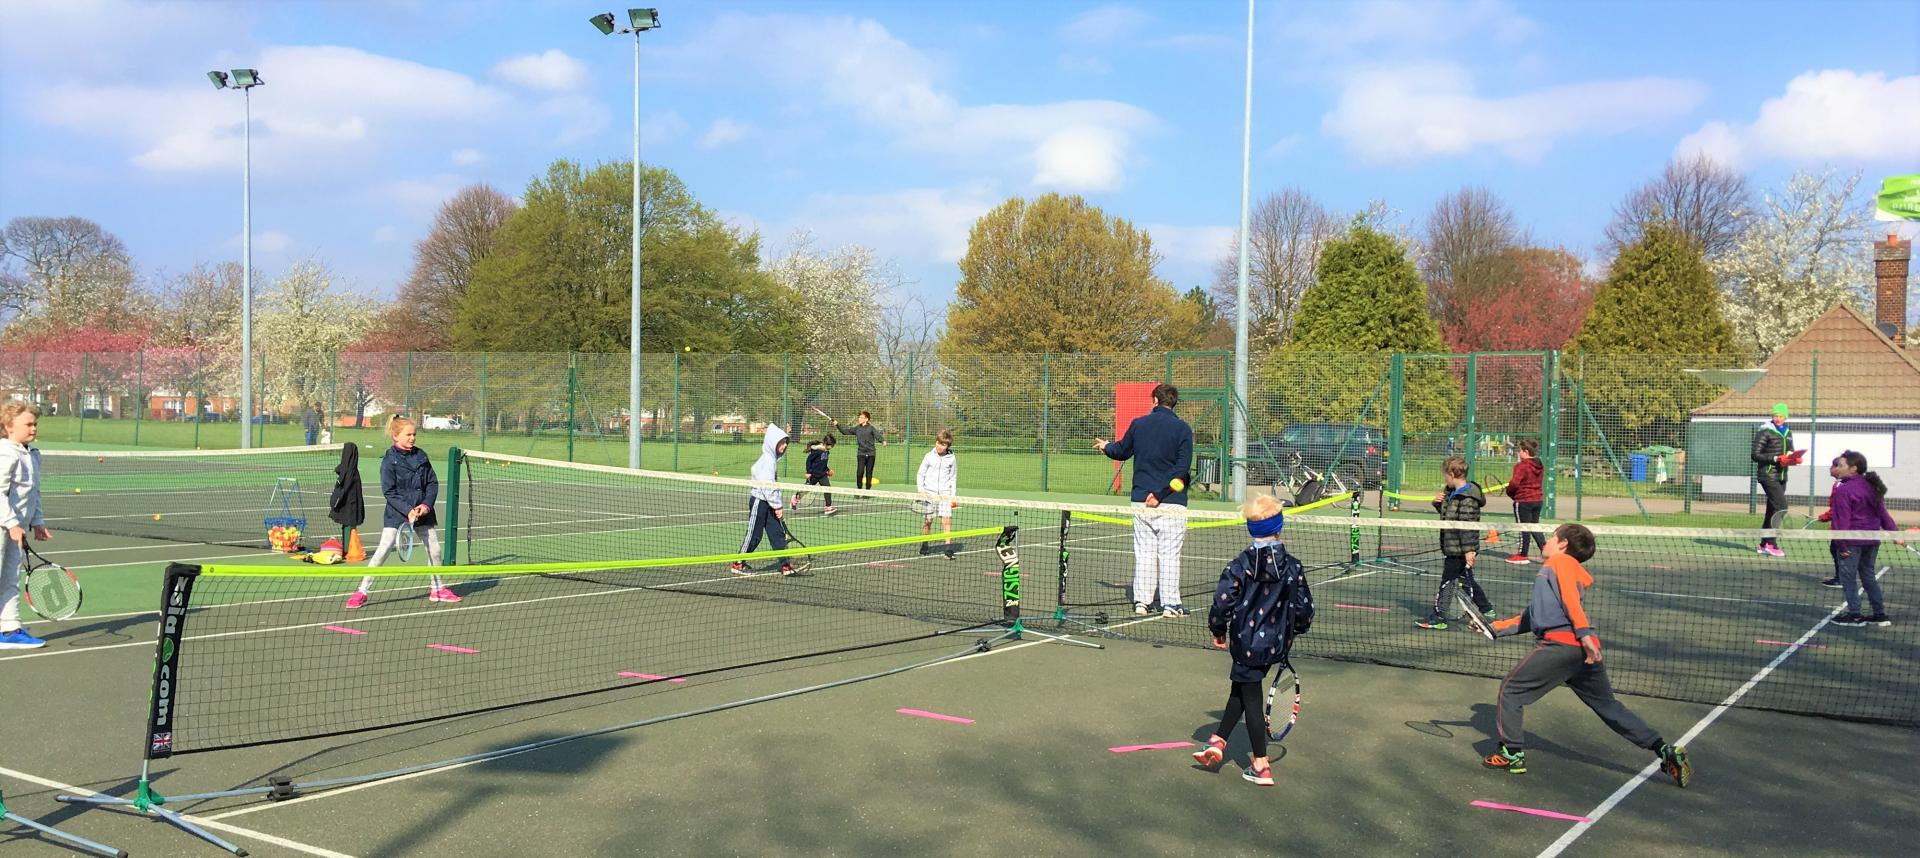 Easter tennis activity